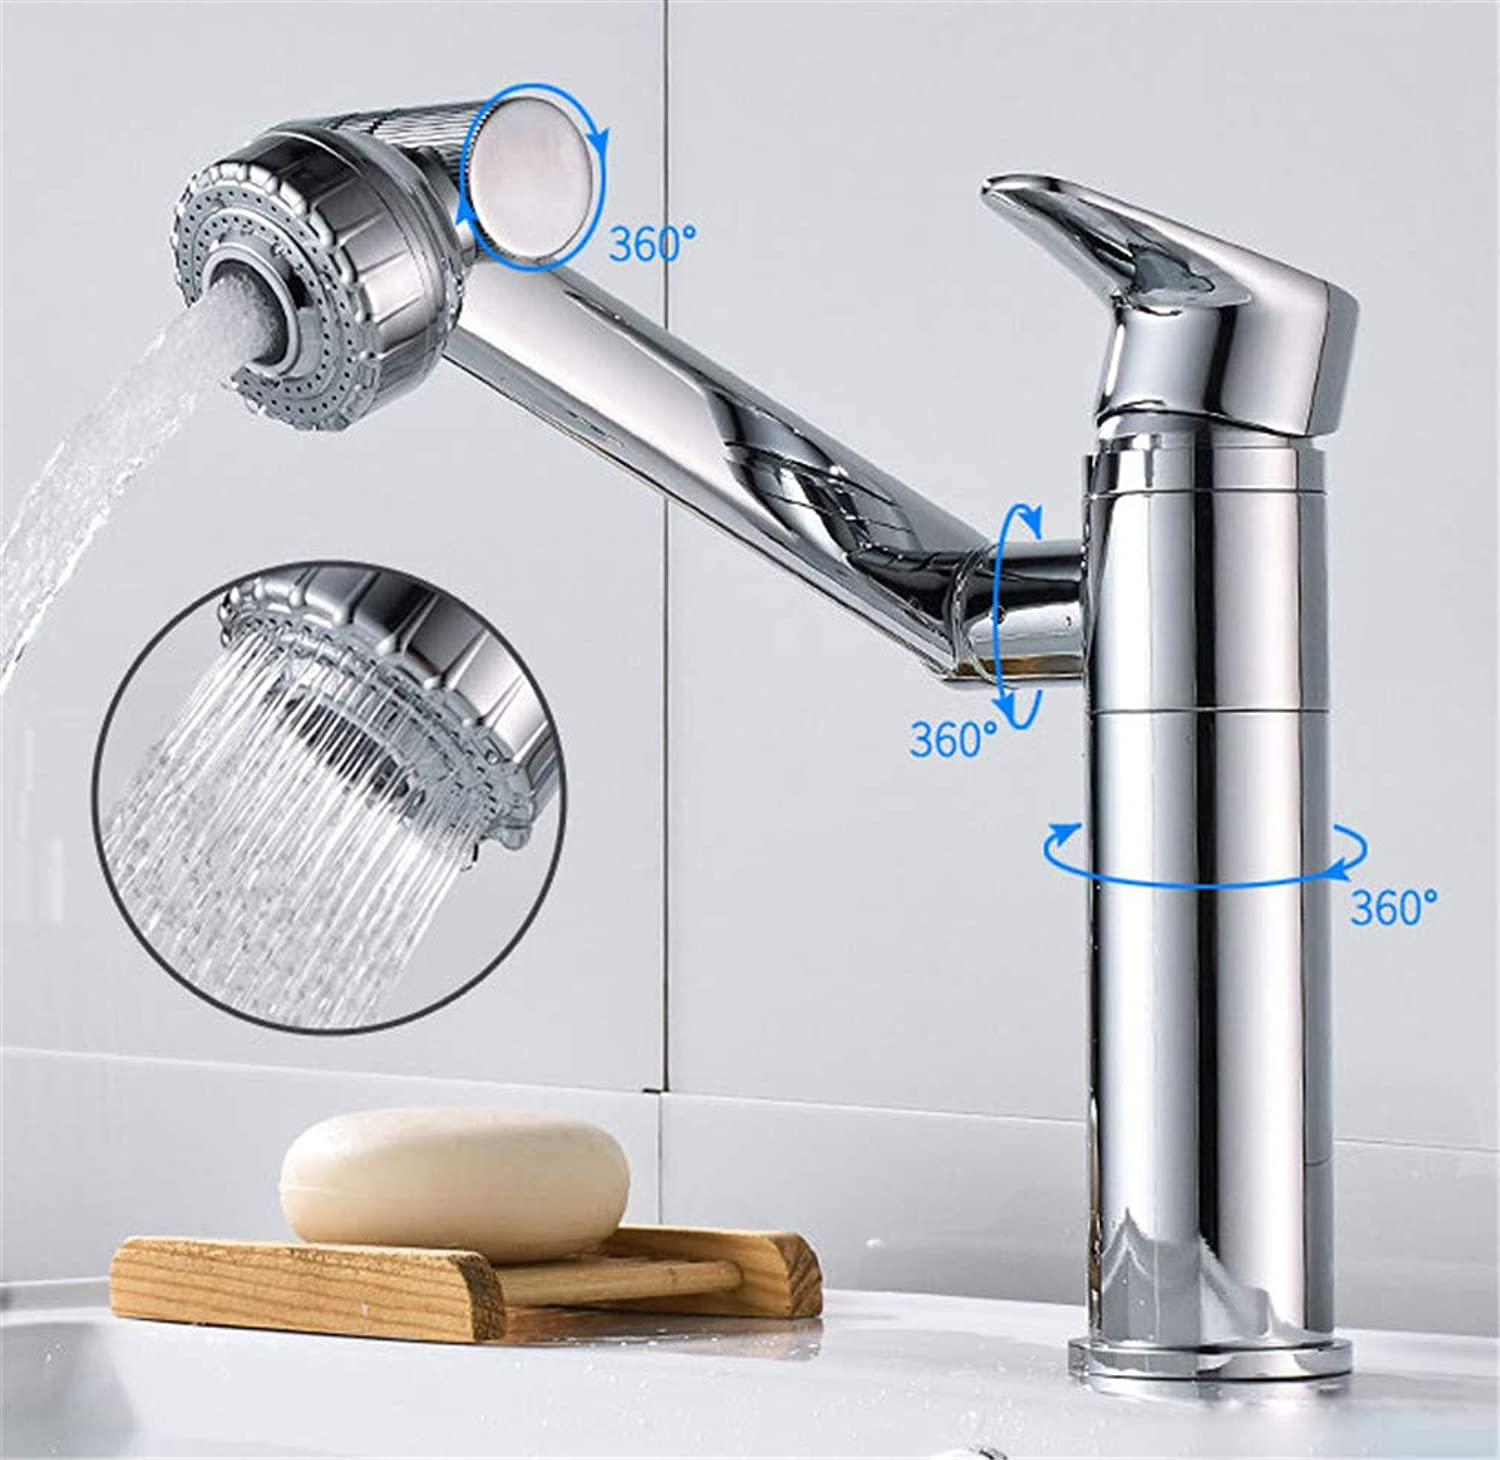 LHY BATHLEADER Dual Mode Effluent Basin Sink Tap, Hot and Cold Water Adjustment Single Hole Copper 1080° redating Washbasin Basin Faucet for Bathroom Kitchen,200mmhigh